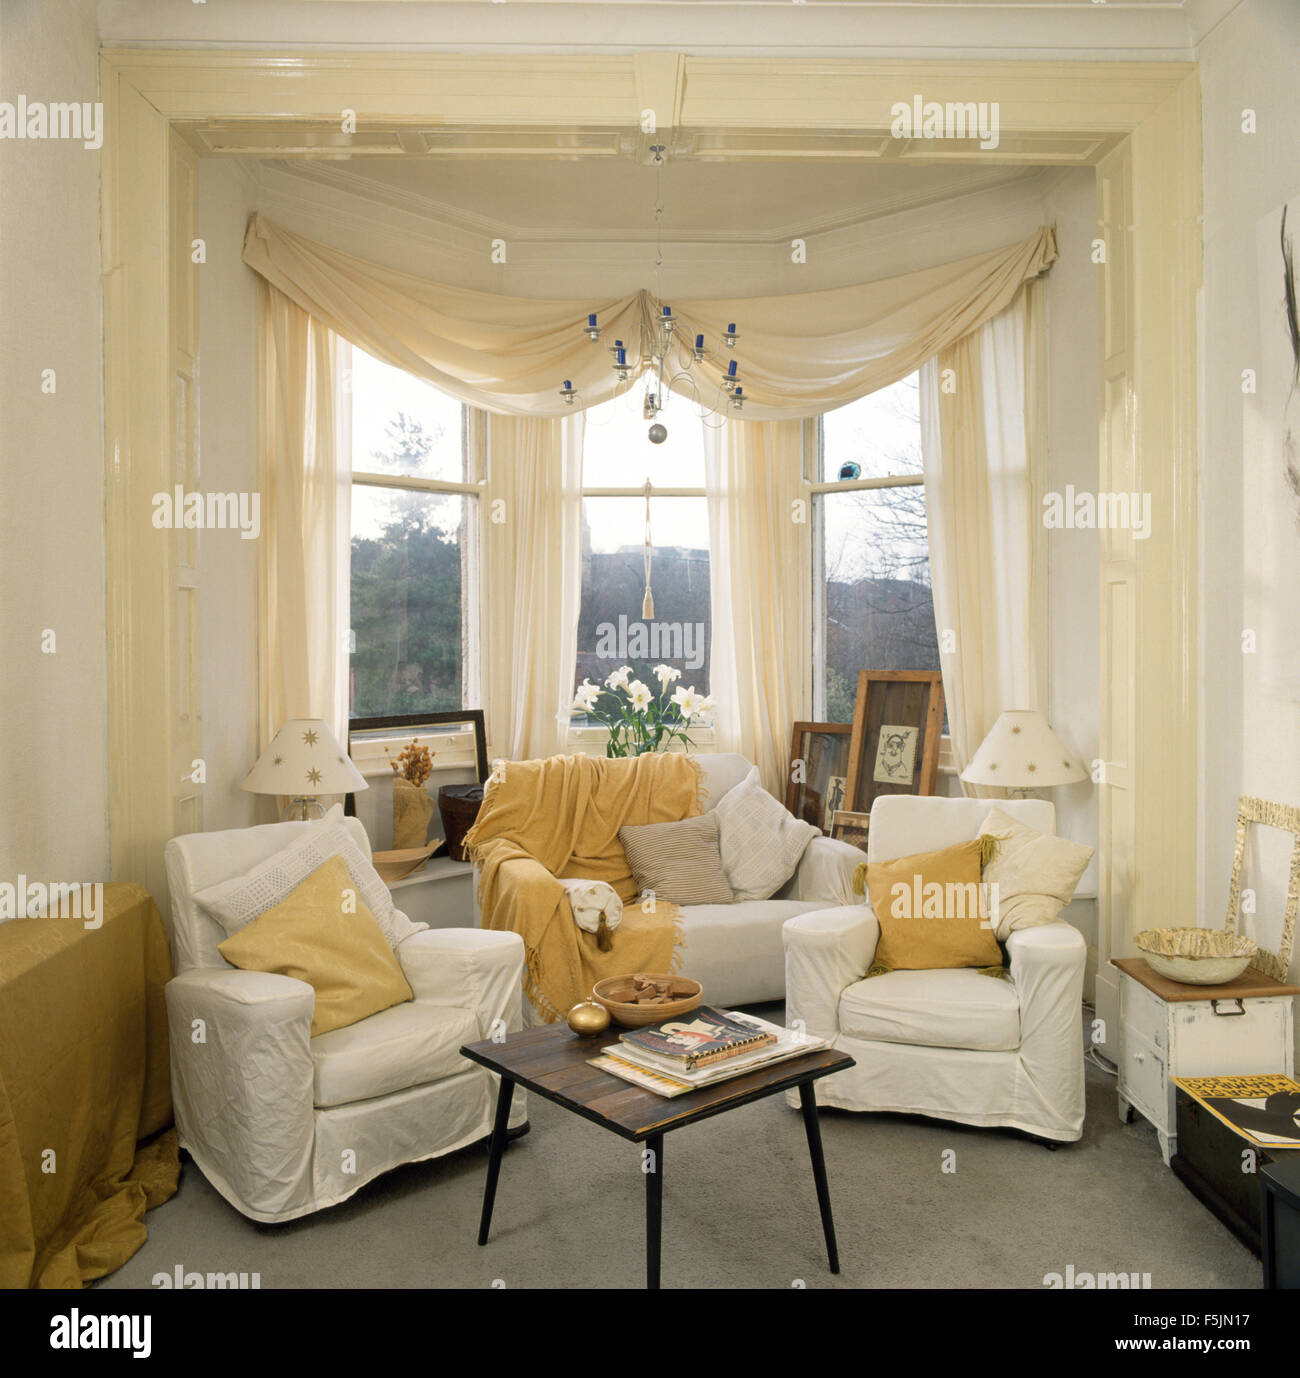 White Swagged Voile Curtains On Bay Window In A Nineties Living